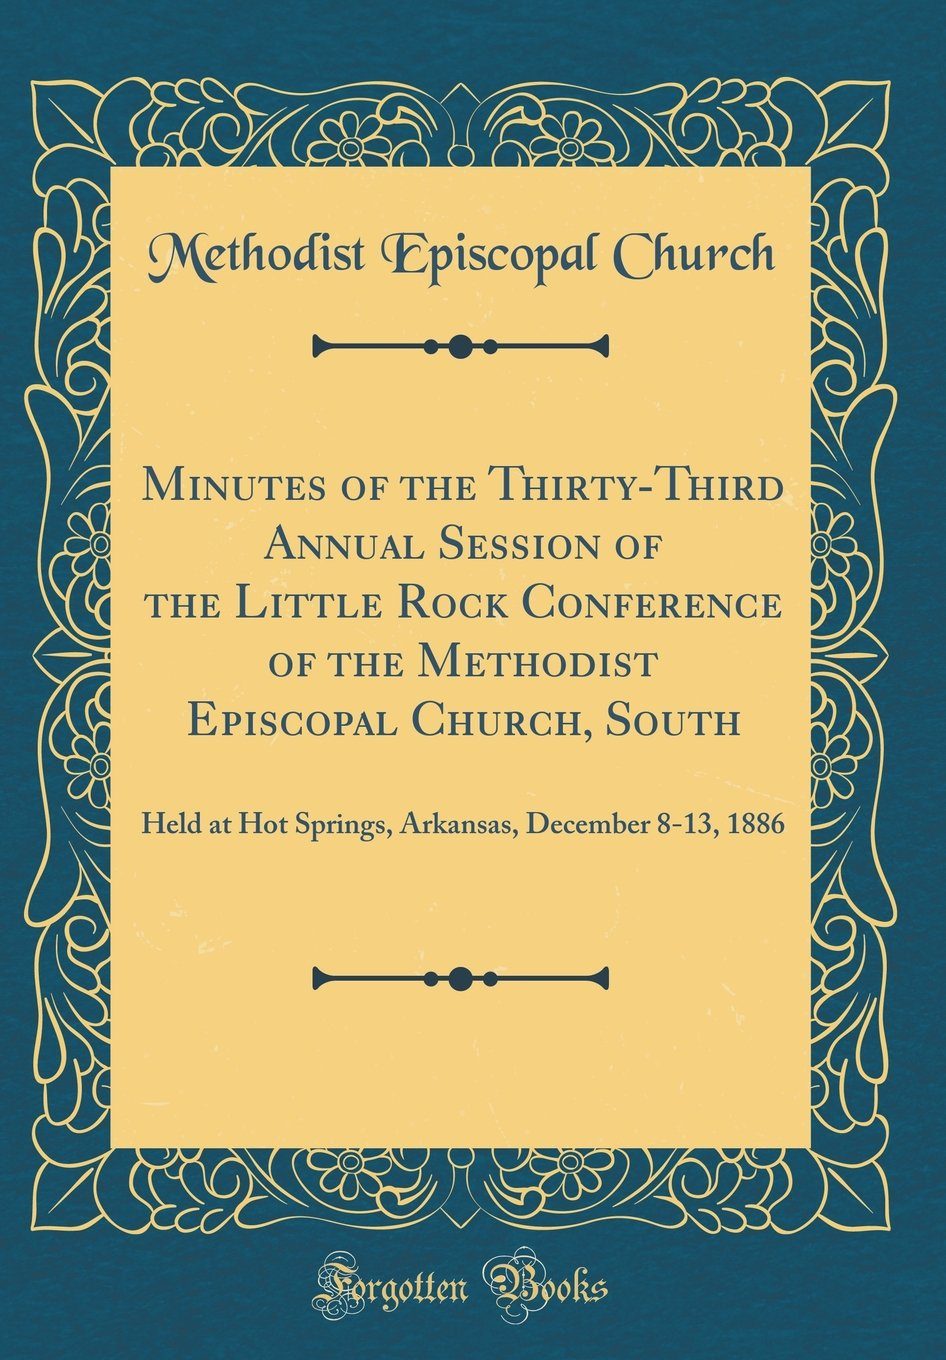 Download Minutes of the Thirty-Third Annual Session of the Little Rock Conference of the Methodist Episcopal Church, South: Held at Hot Springs, Arkansas, December 8-13, 1886 (Classic Reprint) pdf epub